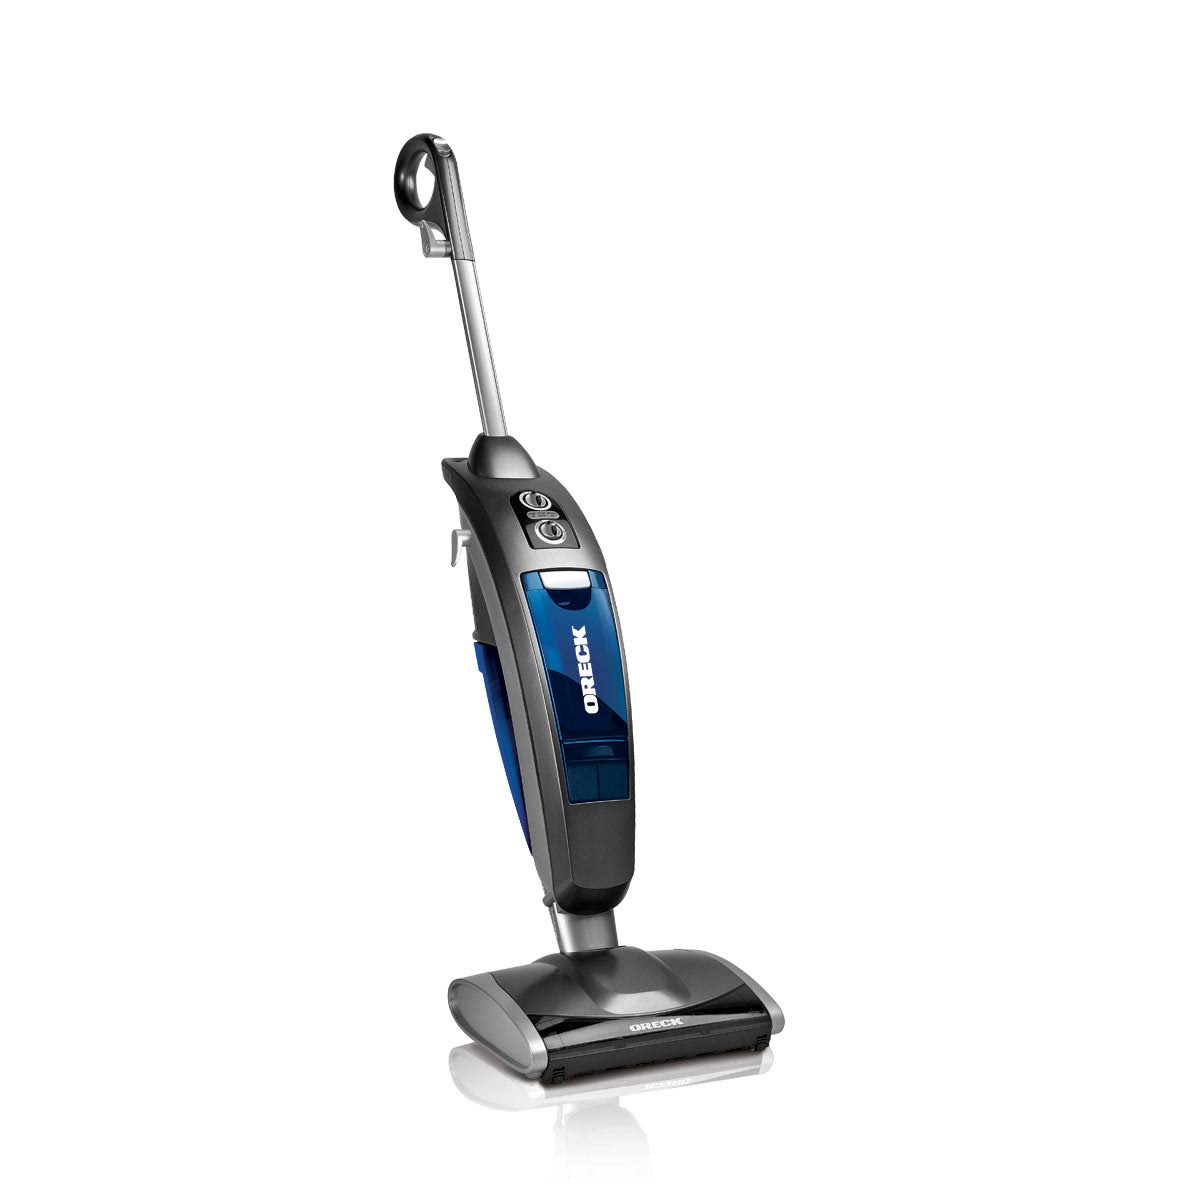 Oreck Versa Vac 2 in 1 Vacuum and Steam Mop Cleaner System - Blue